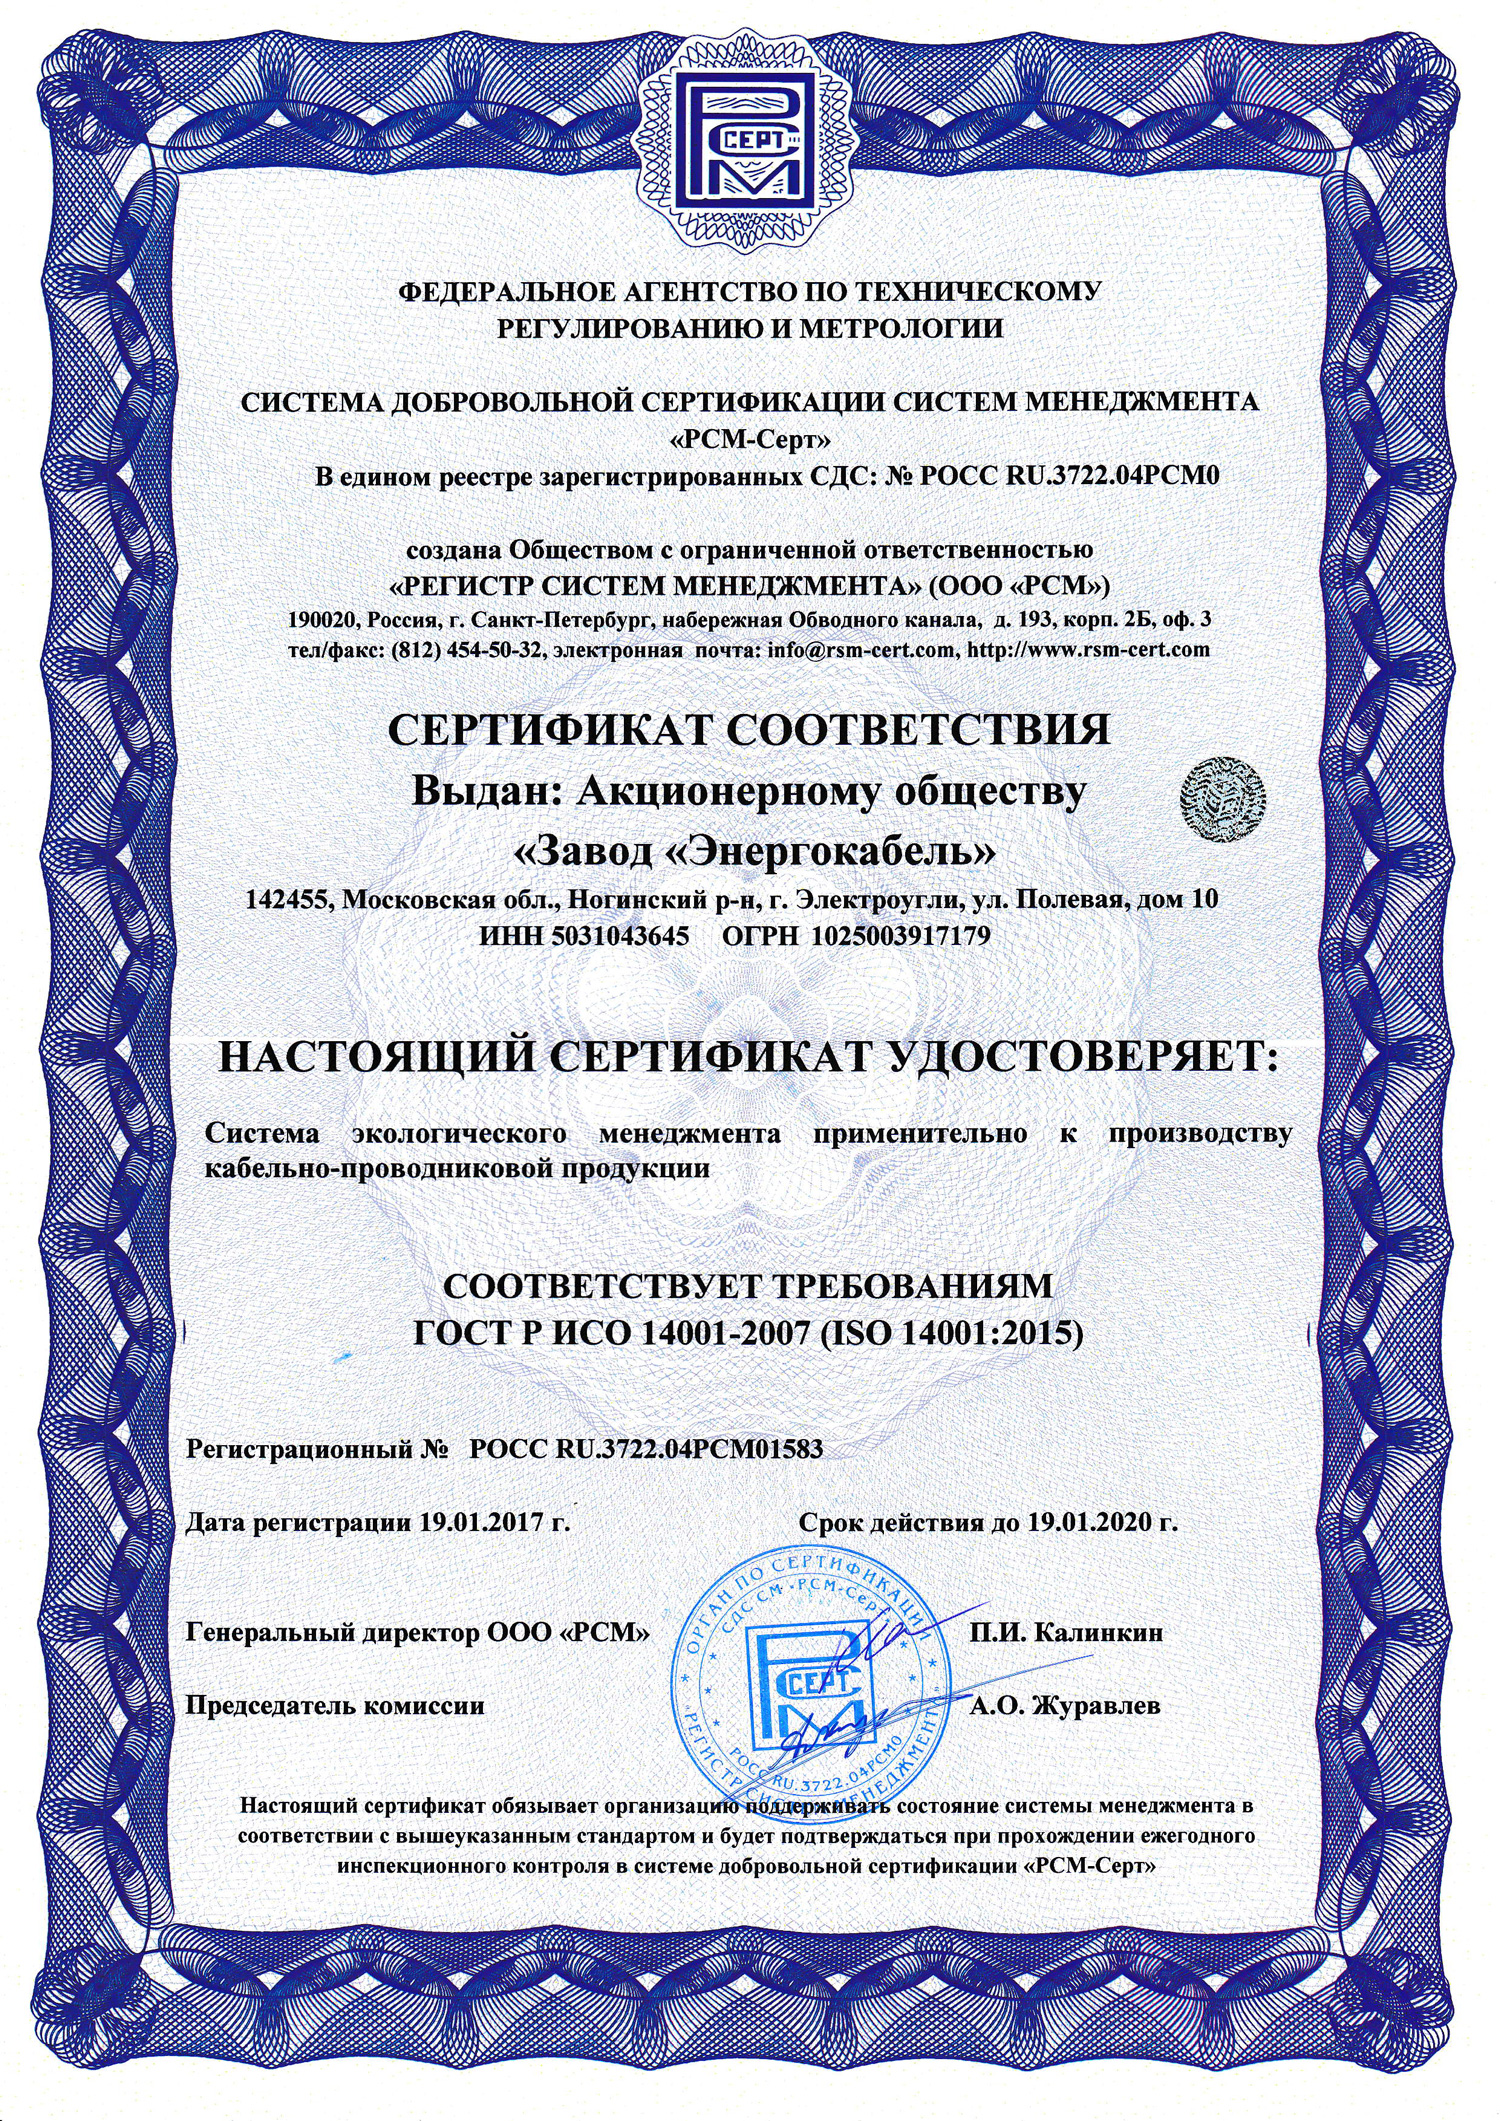 Certificate of compliance of the environmental management system with the requirements of GOST R ISO 14001-2007 (ISO 14001: 2015)